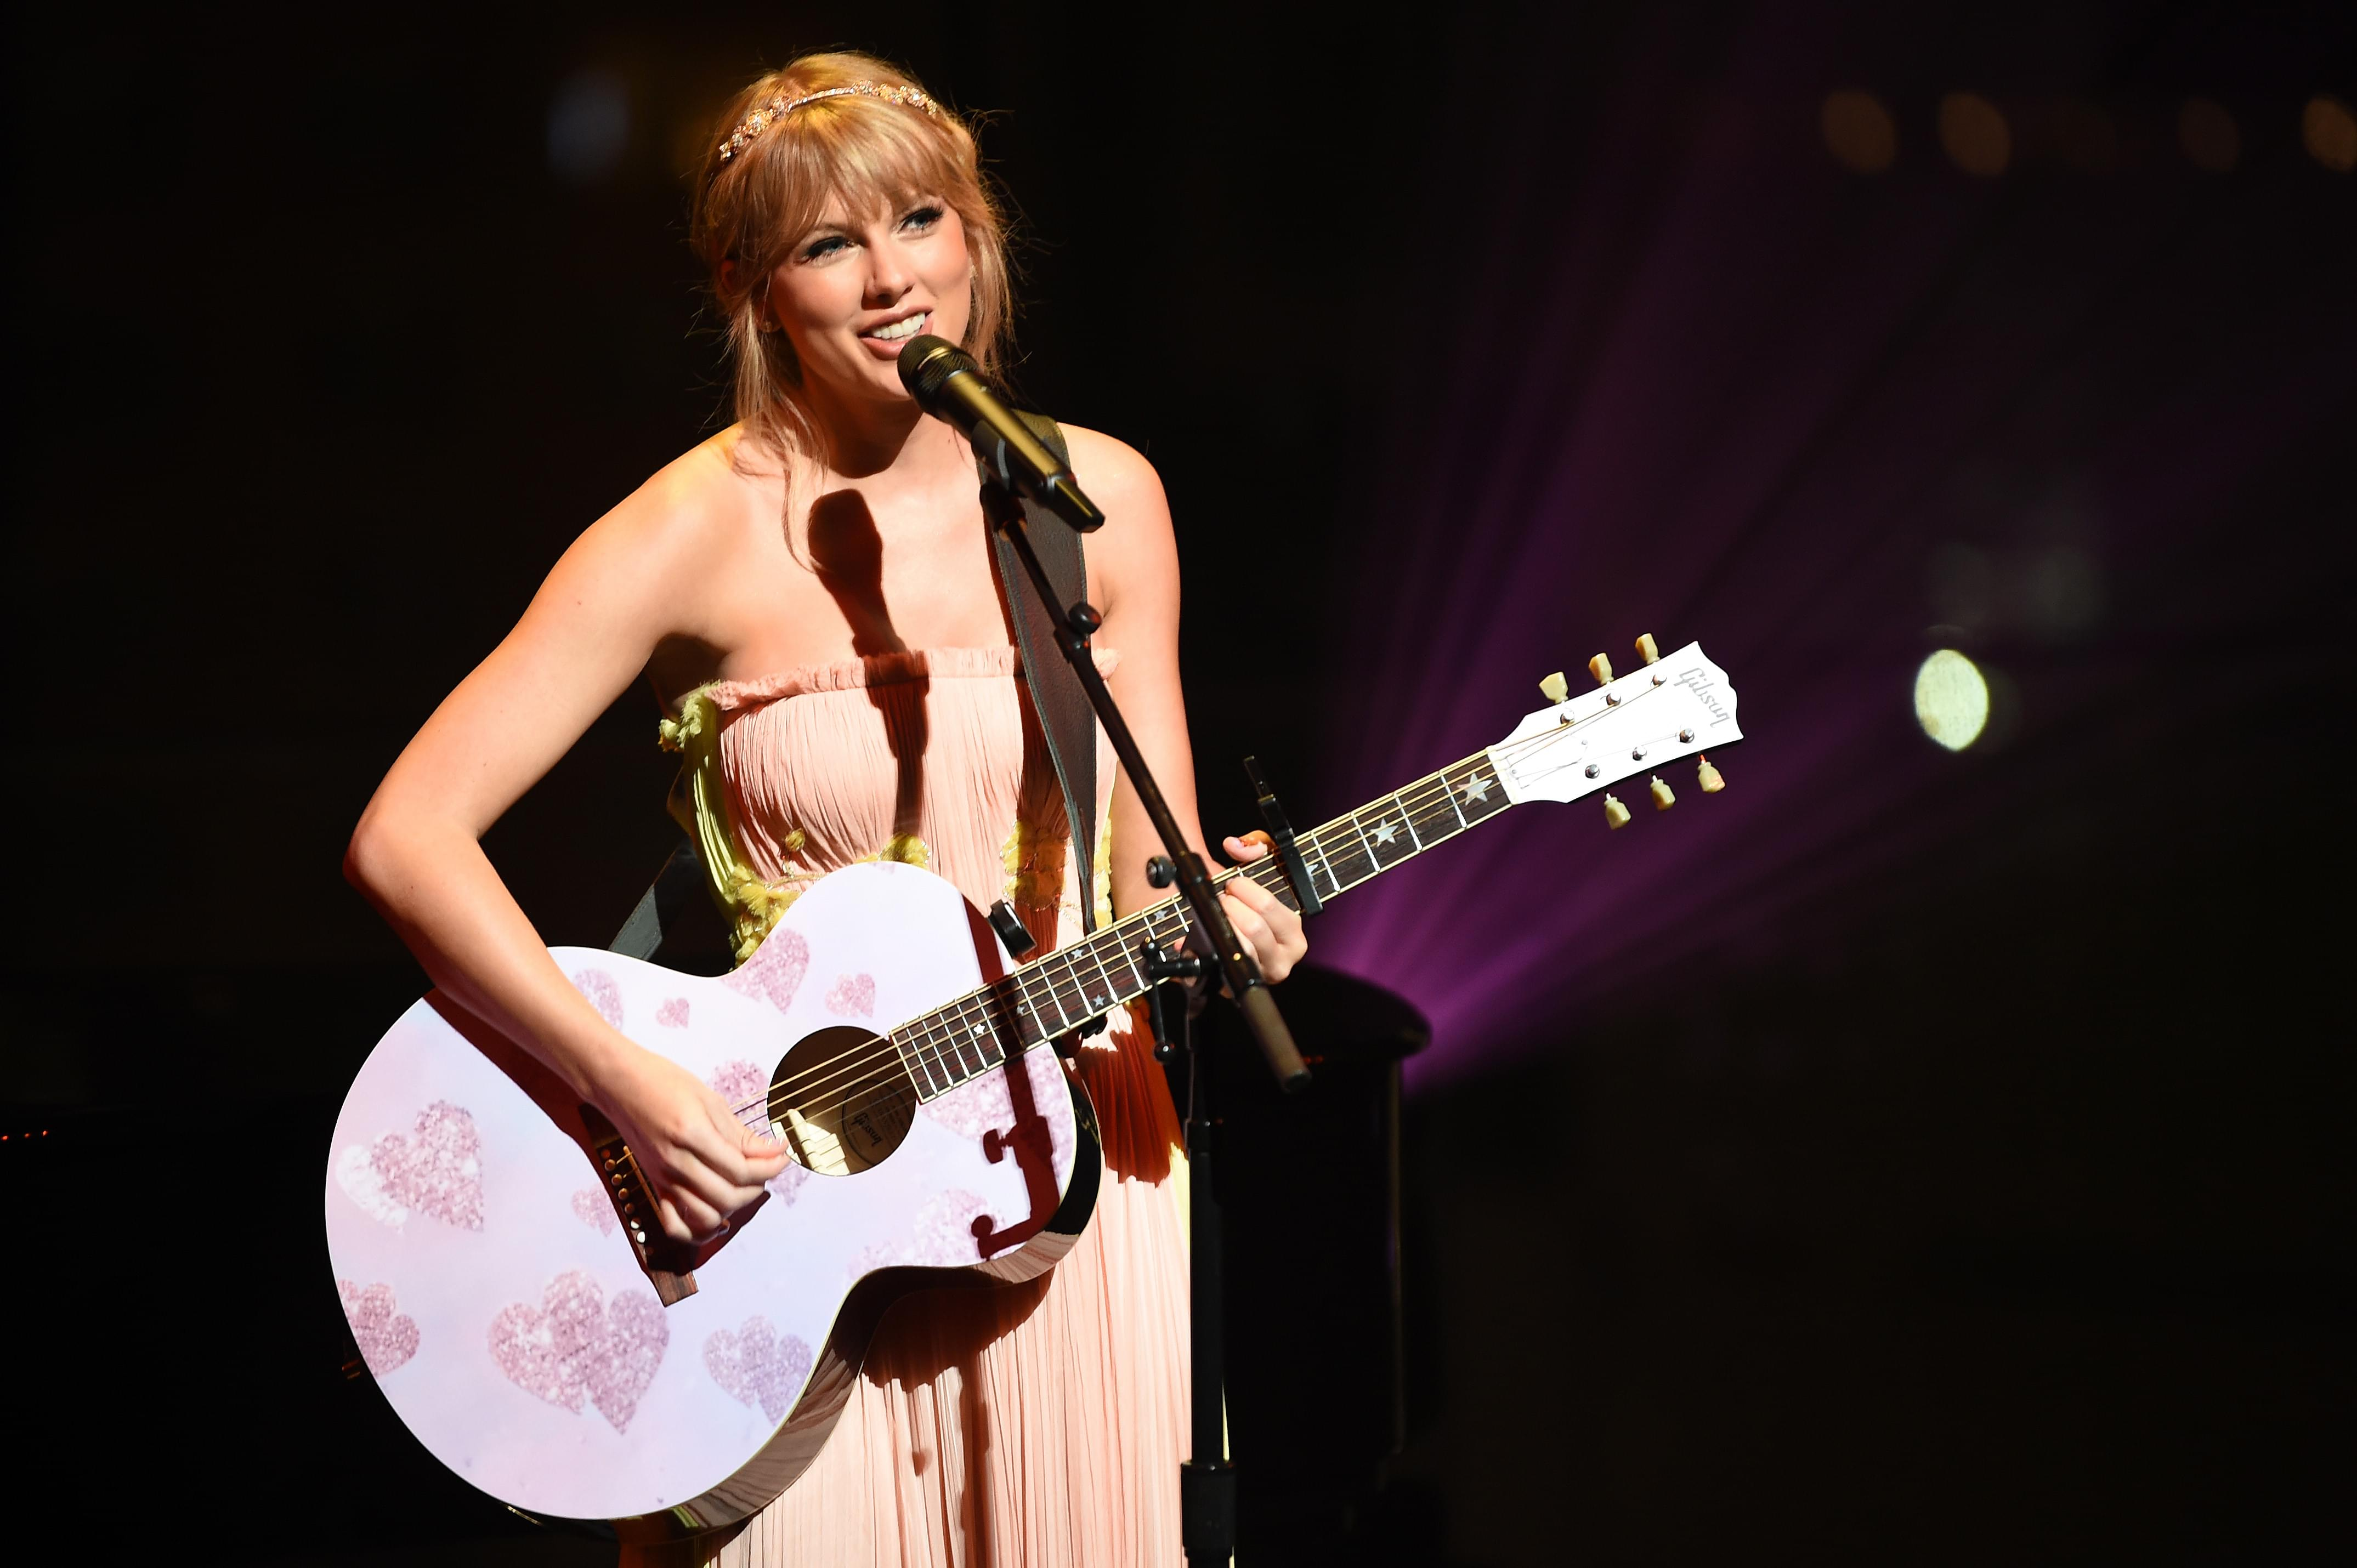 WATCH: Taylor Swift Performs Song She Once Said She'd Never Play